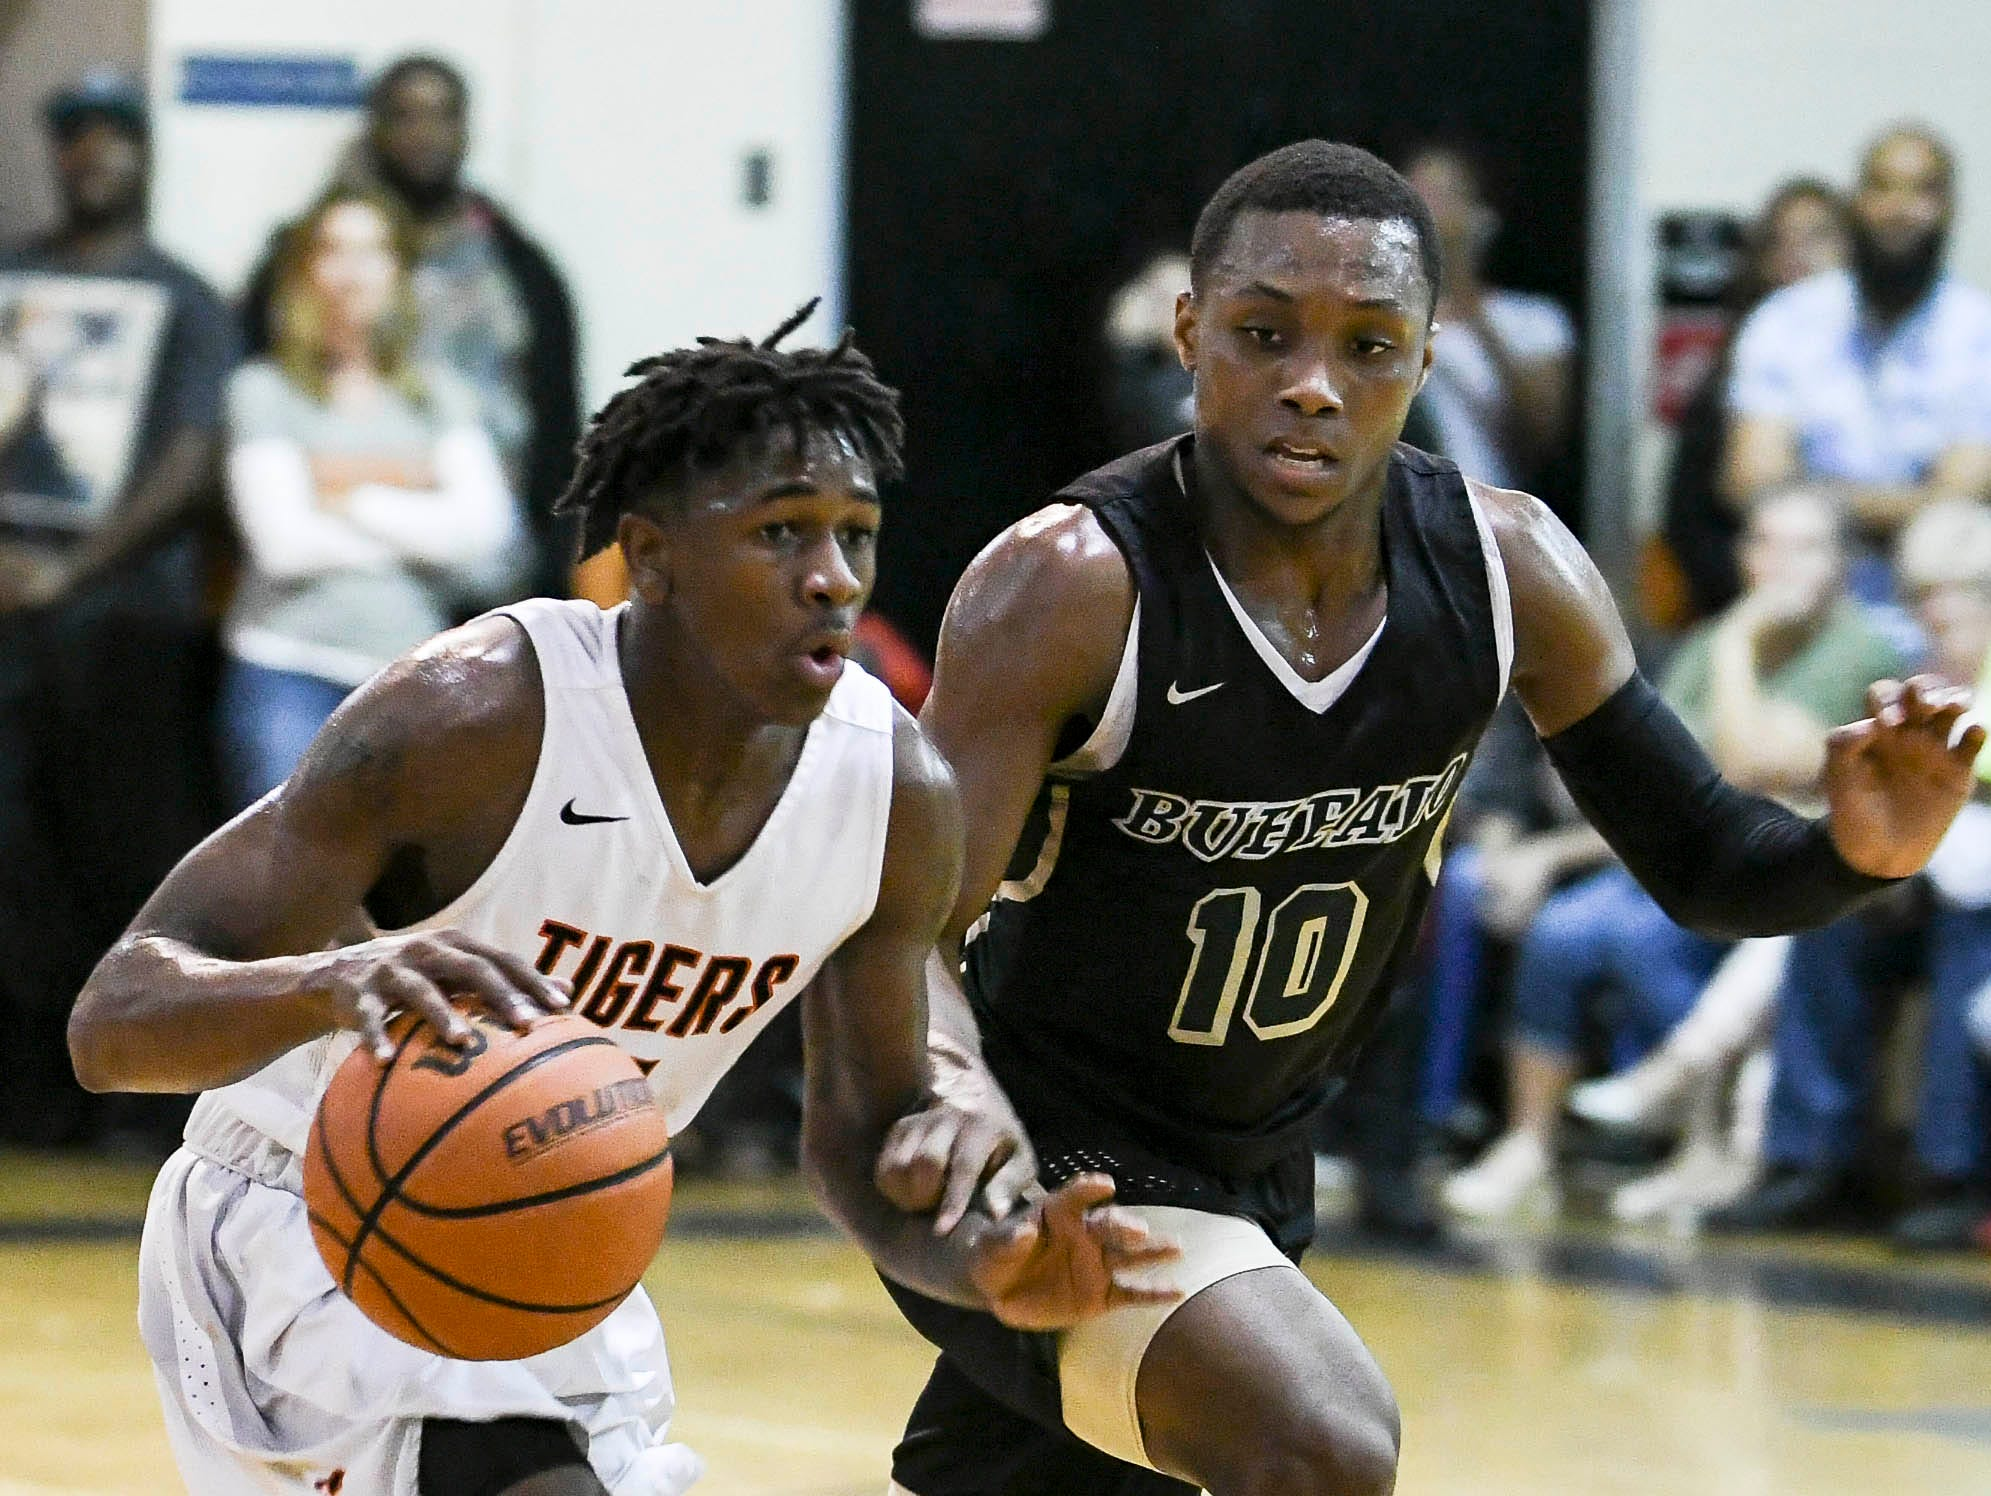 Cocoa's Latrell Pace drives past Terry Every of The Villages during Friday's basketball Regional Final in Cocoa